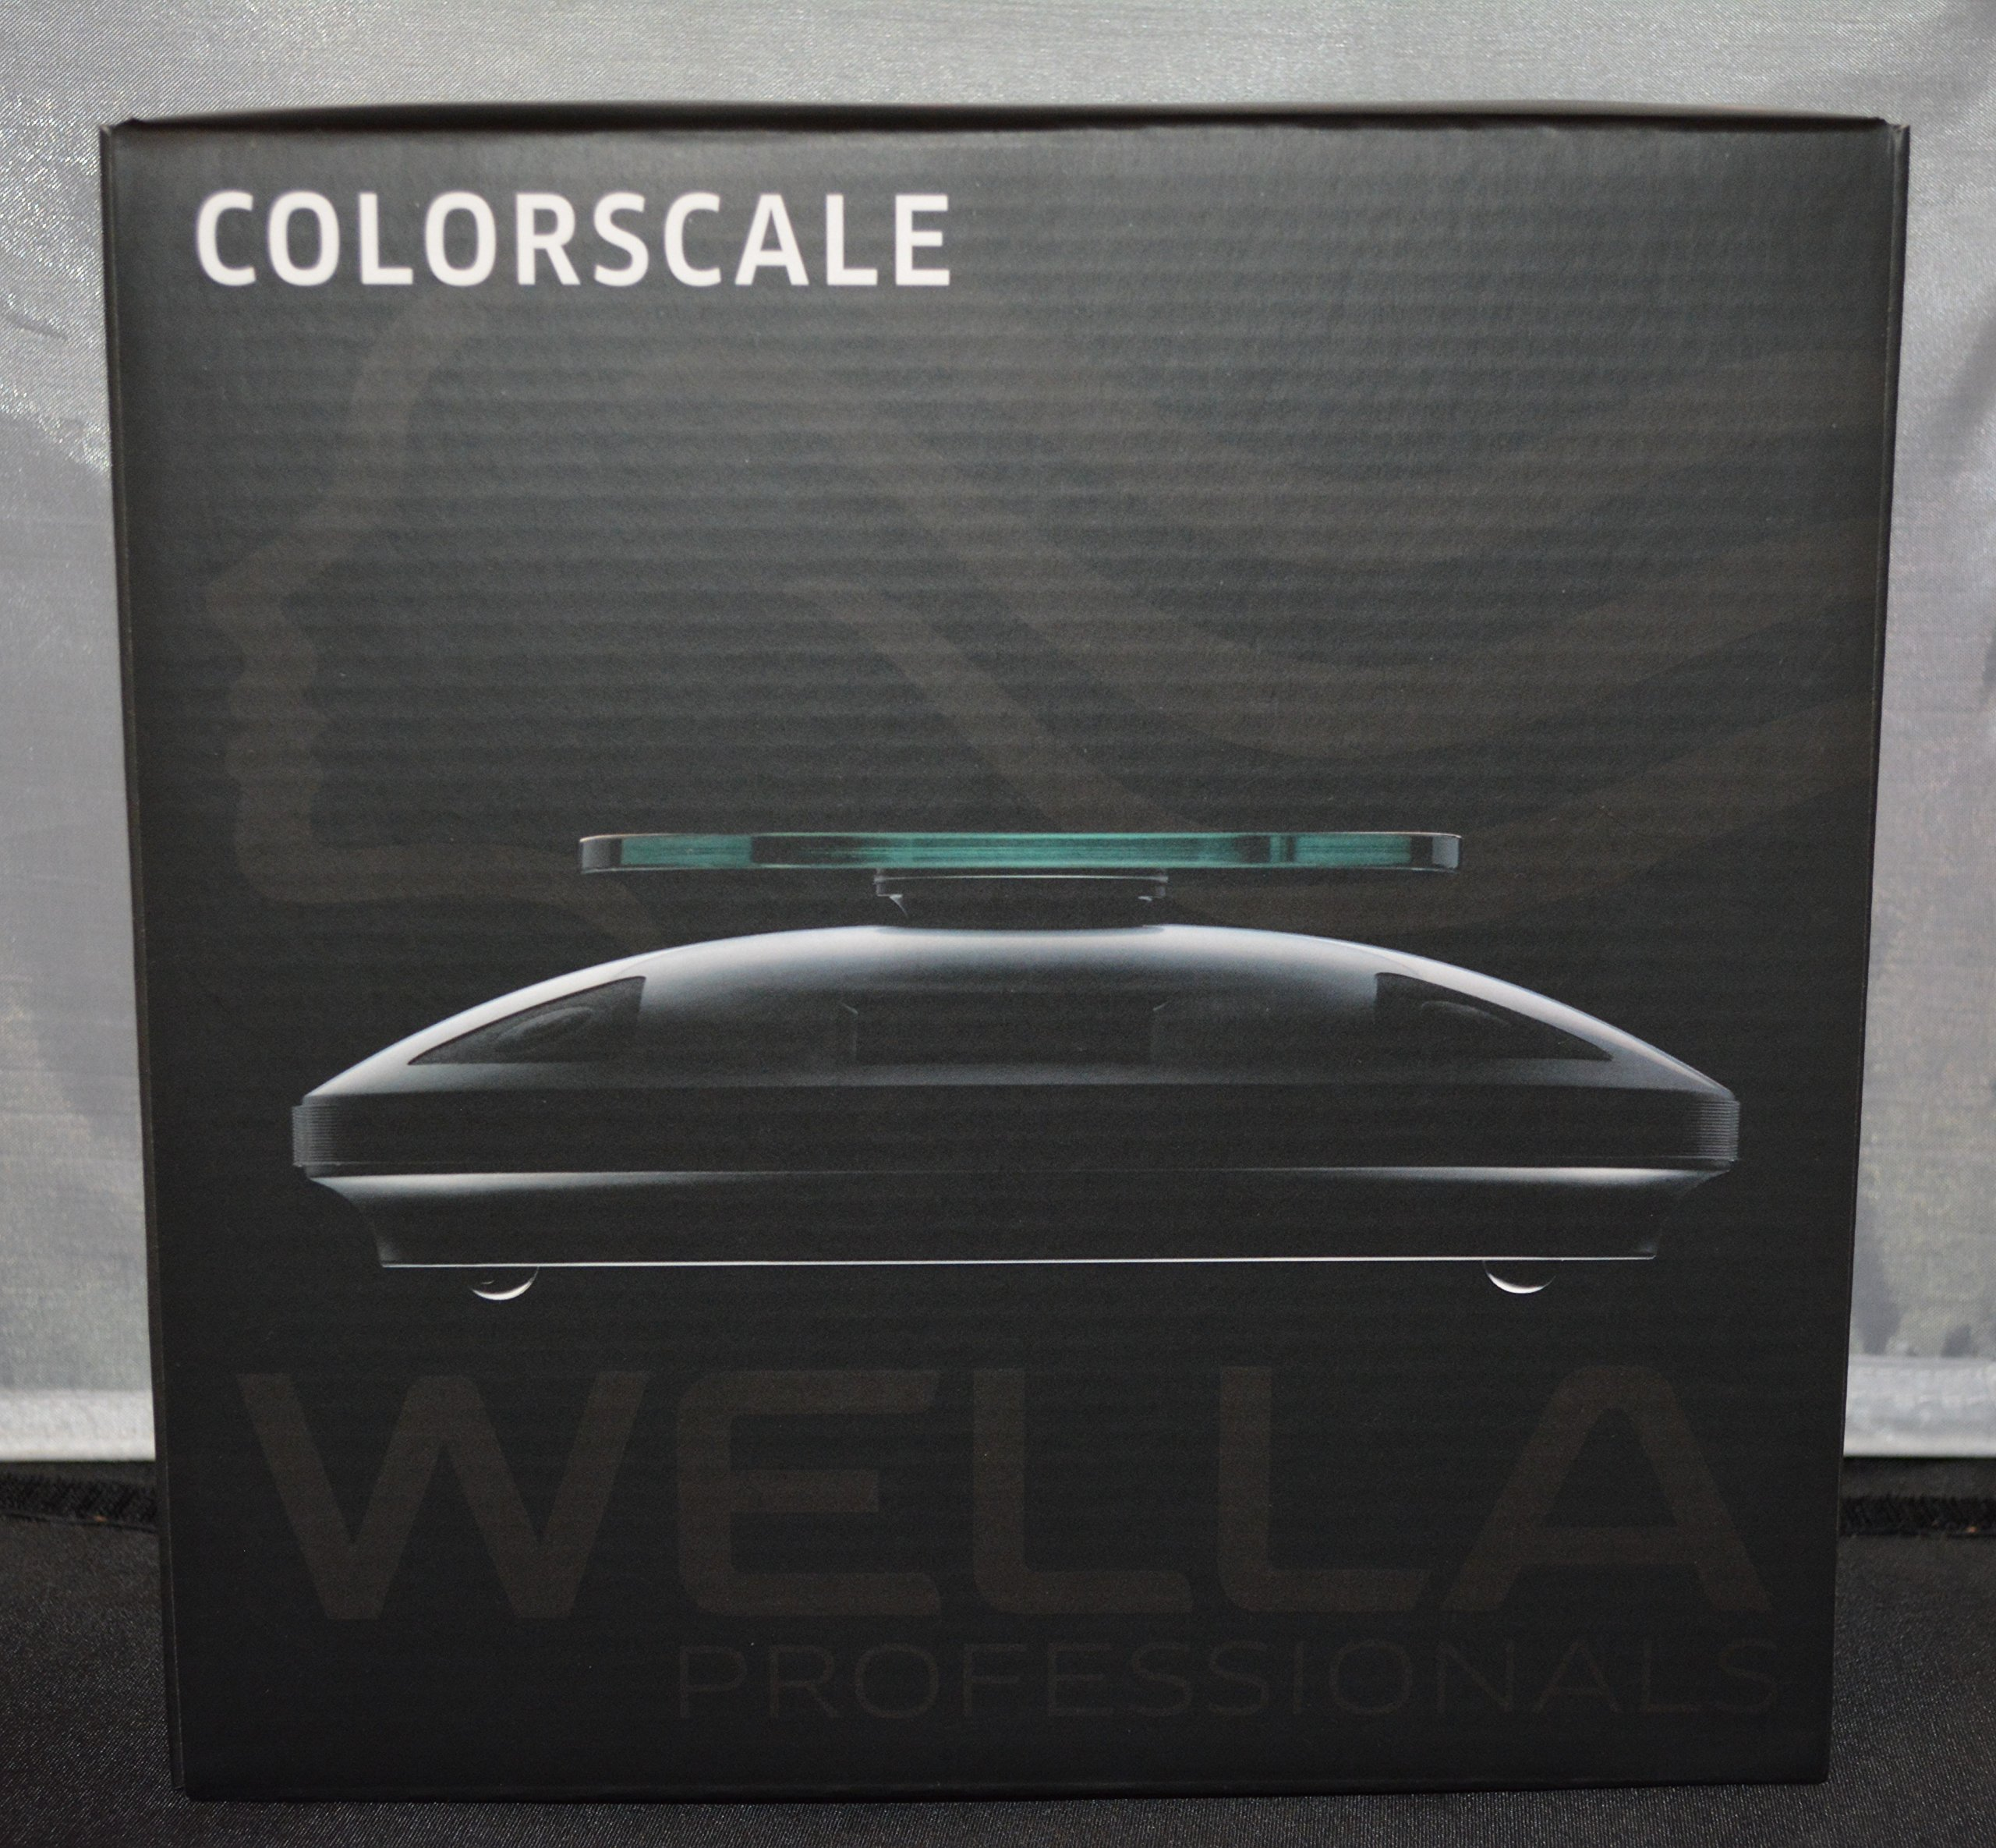 Wella Color Scale 1182 ColorScale for Professionals by Wella Professionals